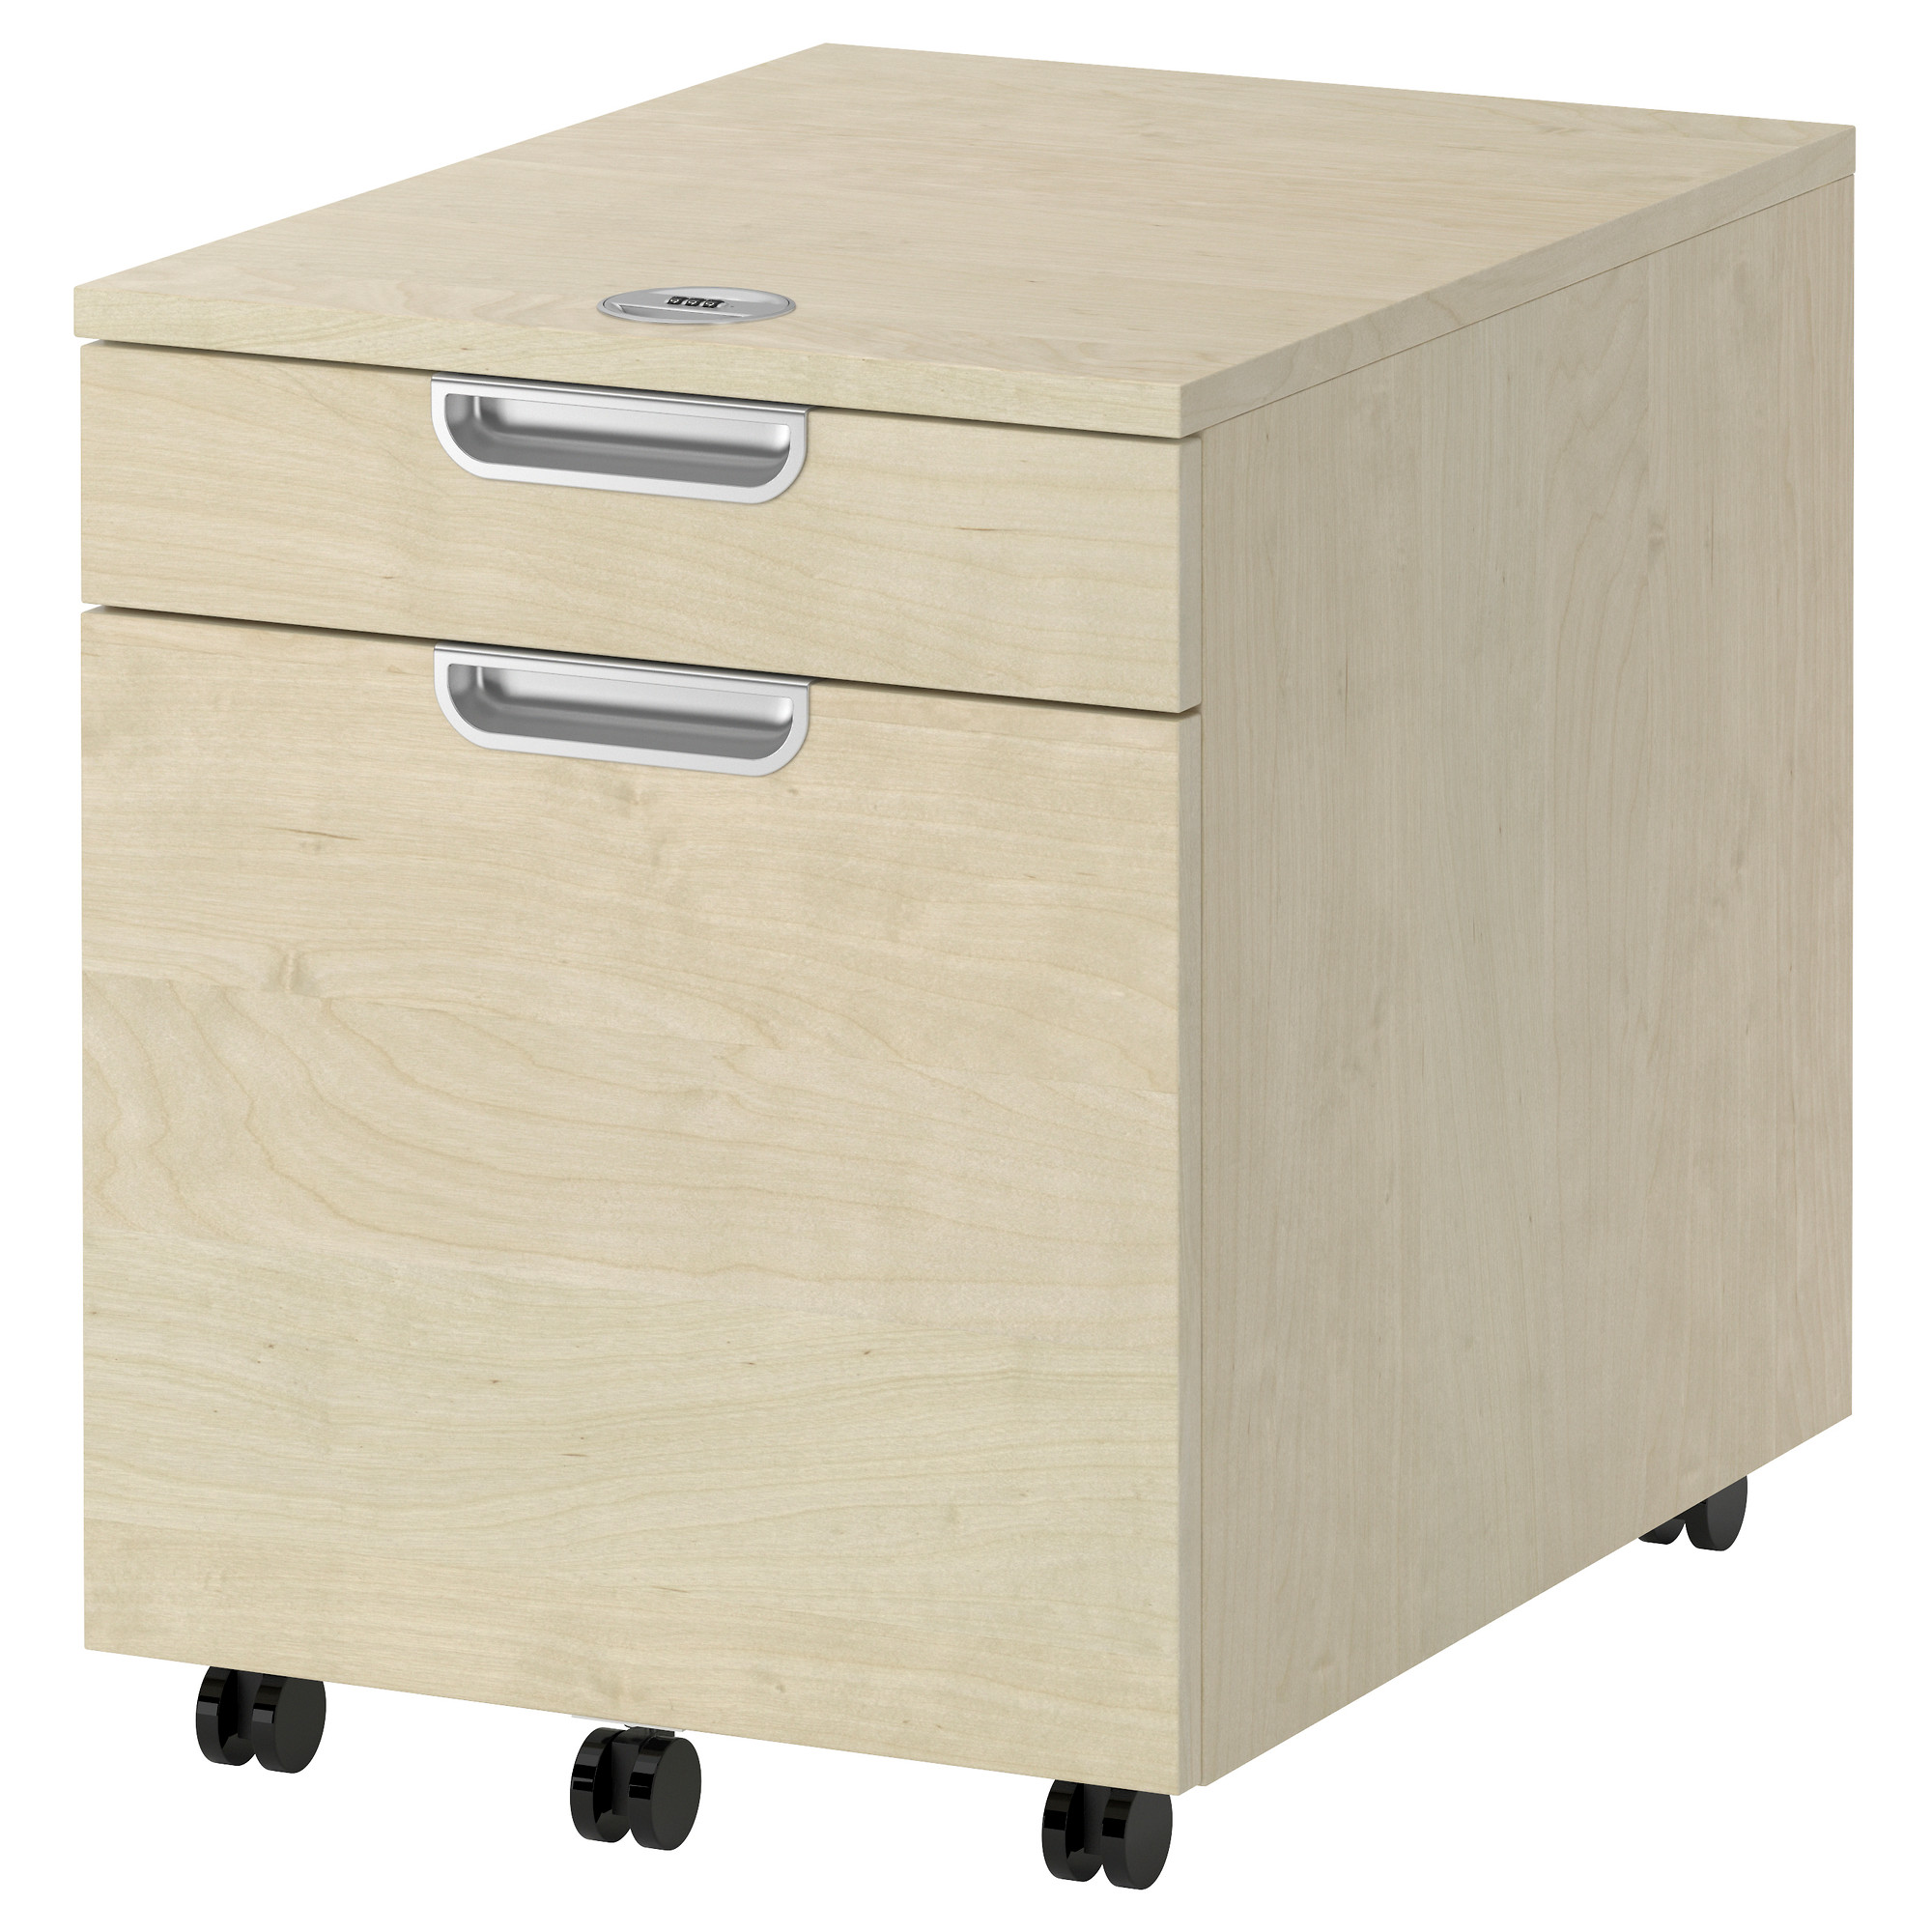 ikea office filing cabinet. Ikea Office Filing Cabinet G